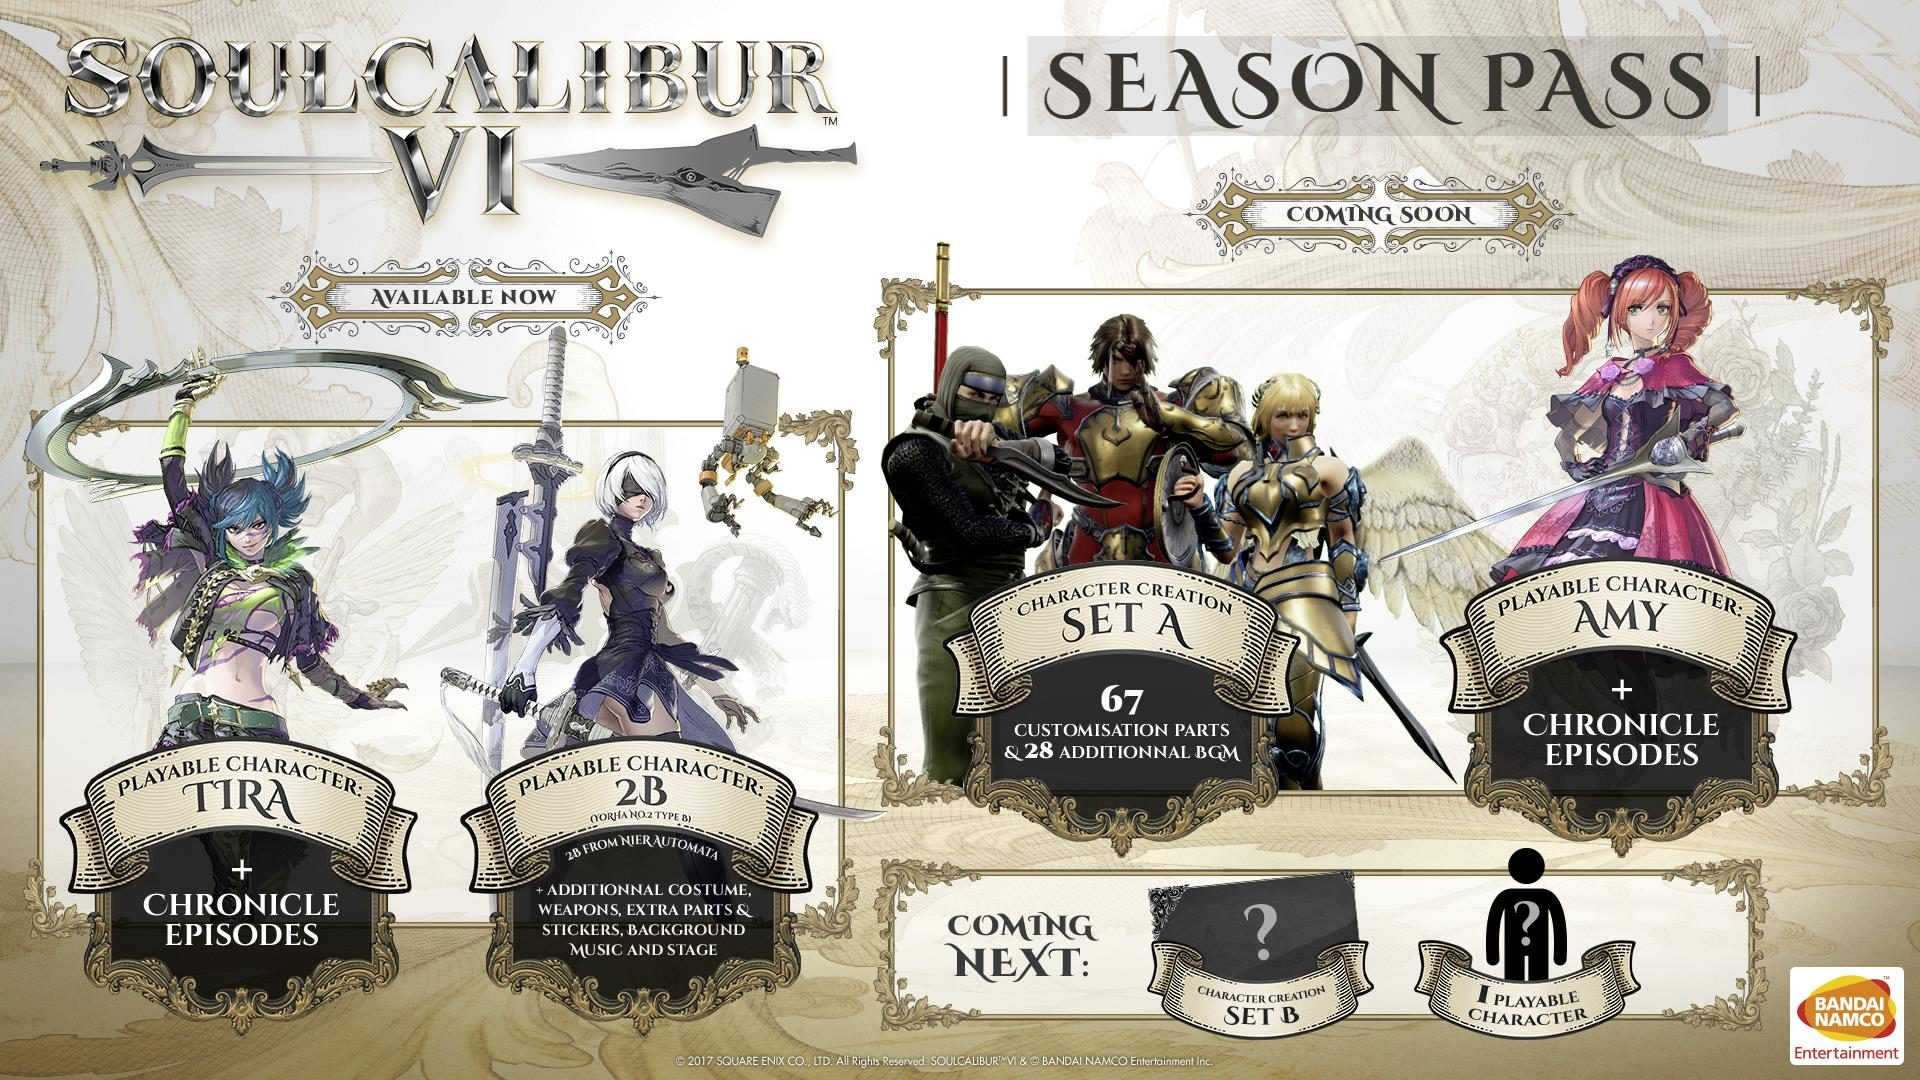 MOCKUP-SOULCALIBUR-VI_SEASONPASS_060219_02_1550479614